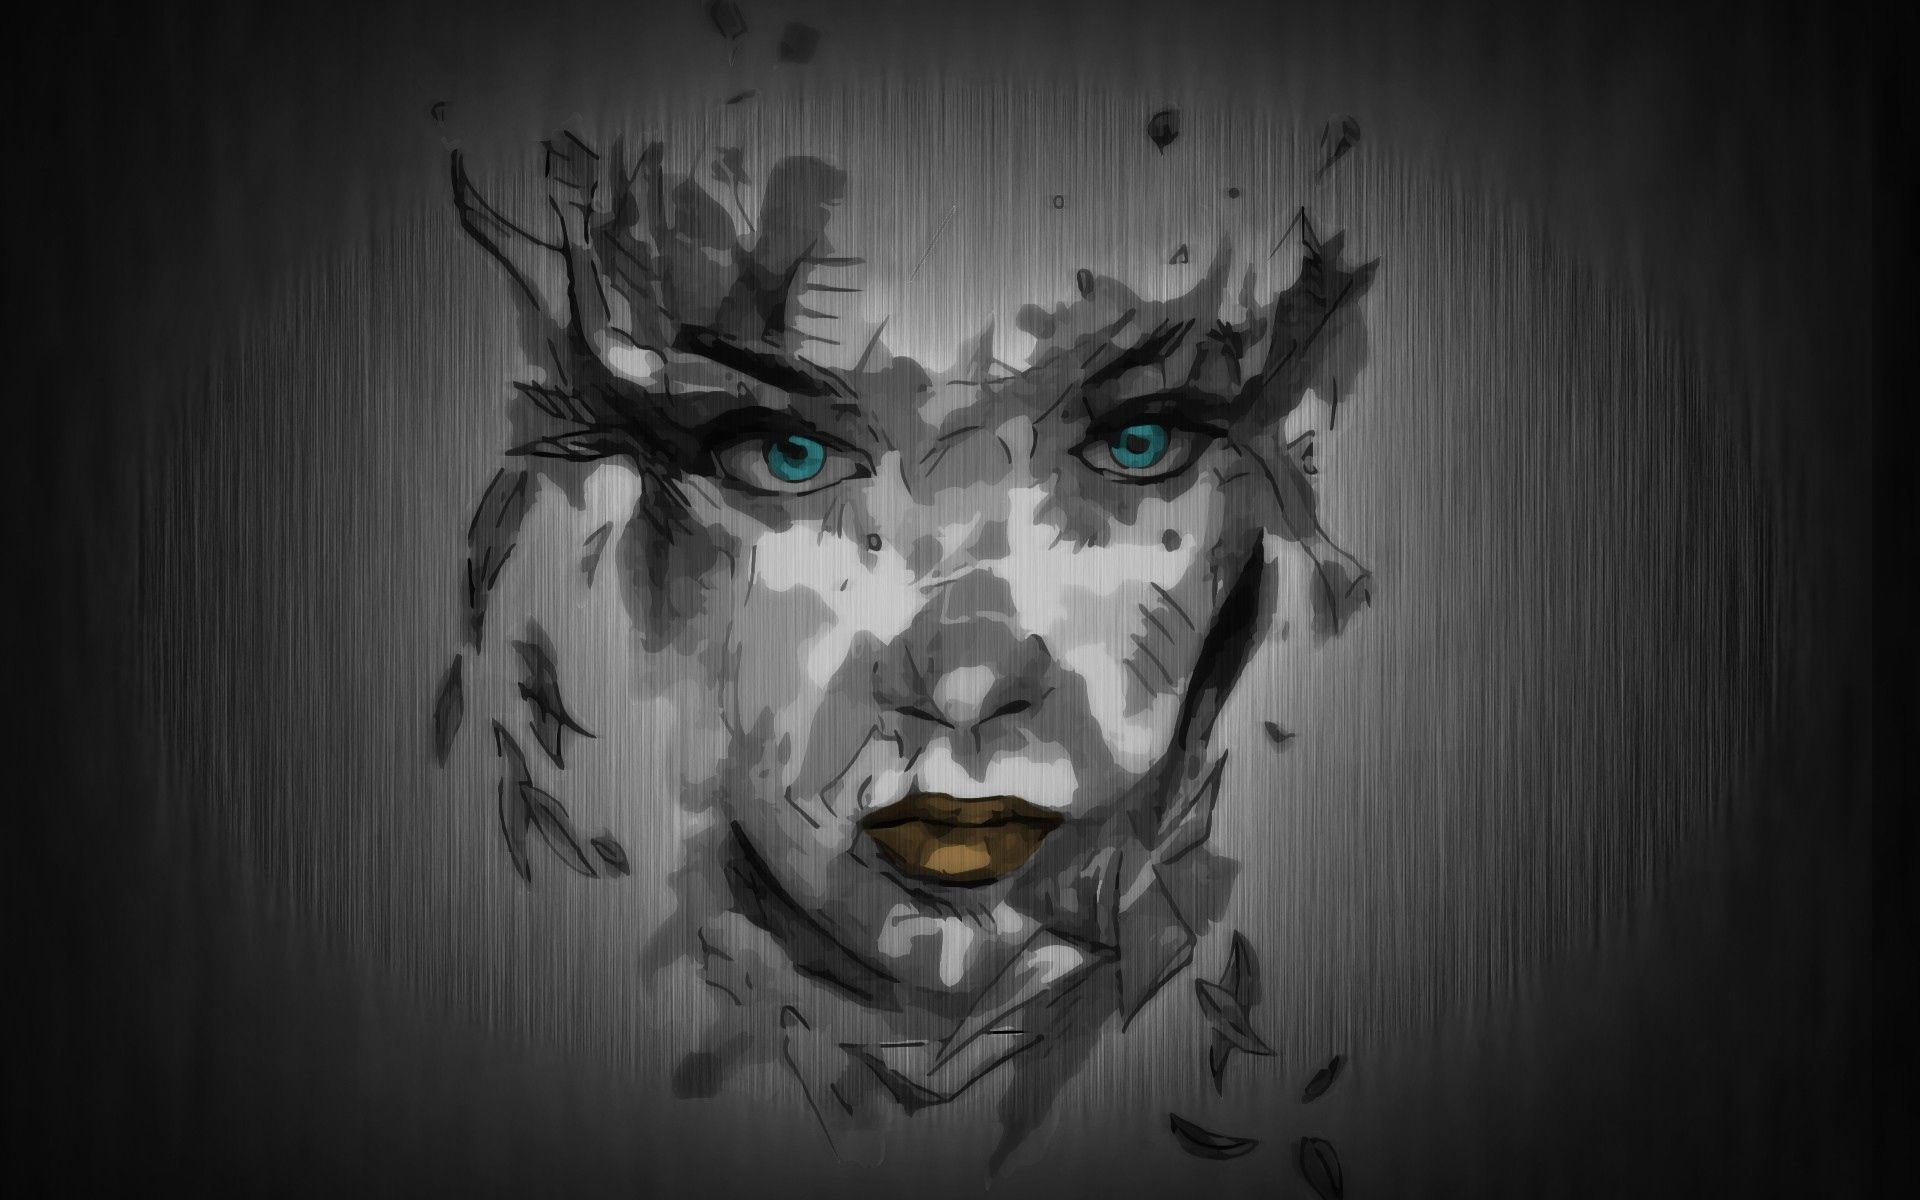 115192 download wallpaper Abstract, Face, Paint, Background screensavers and pictures for free